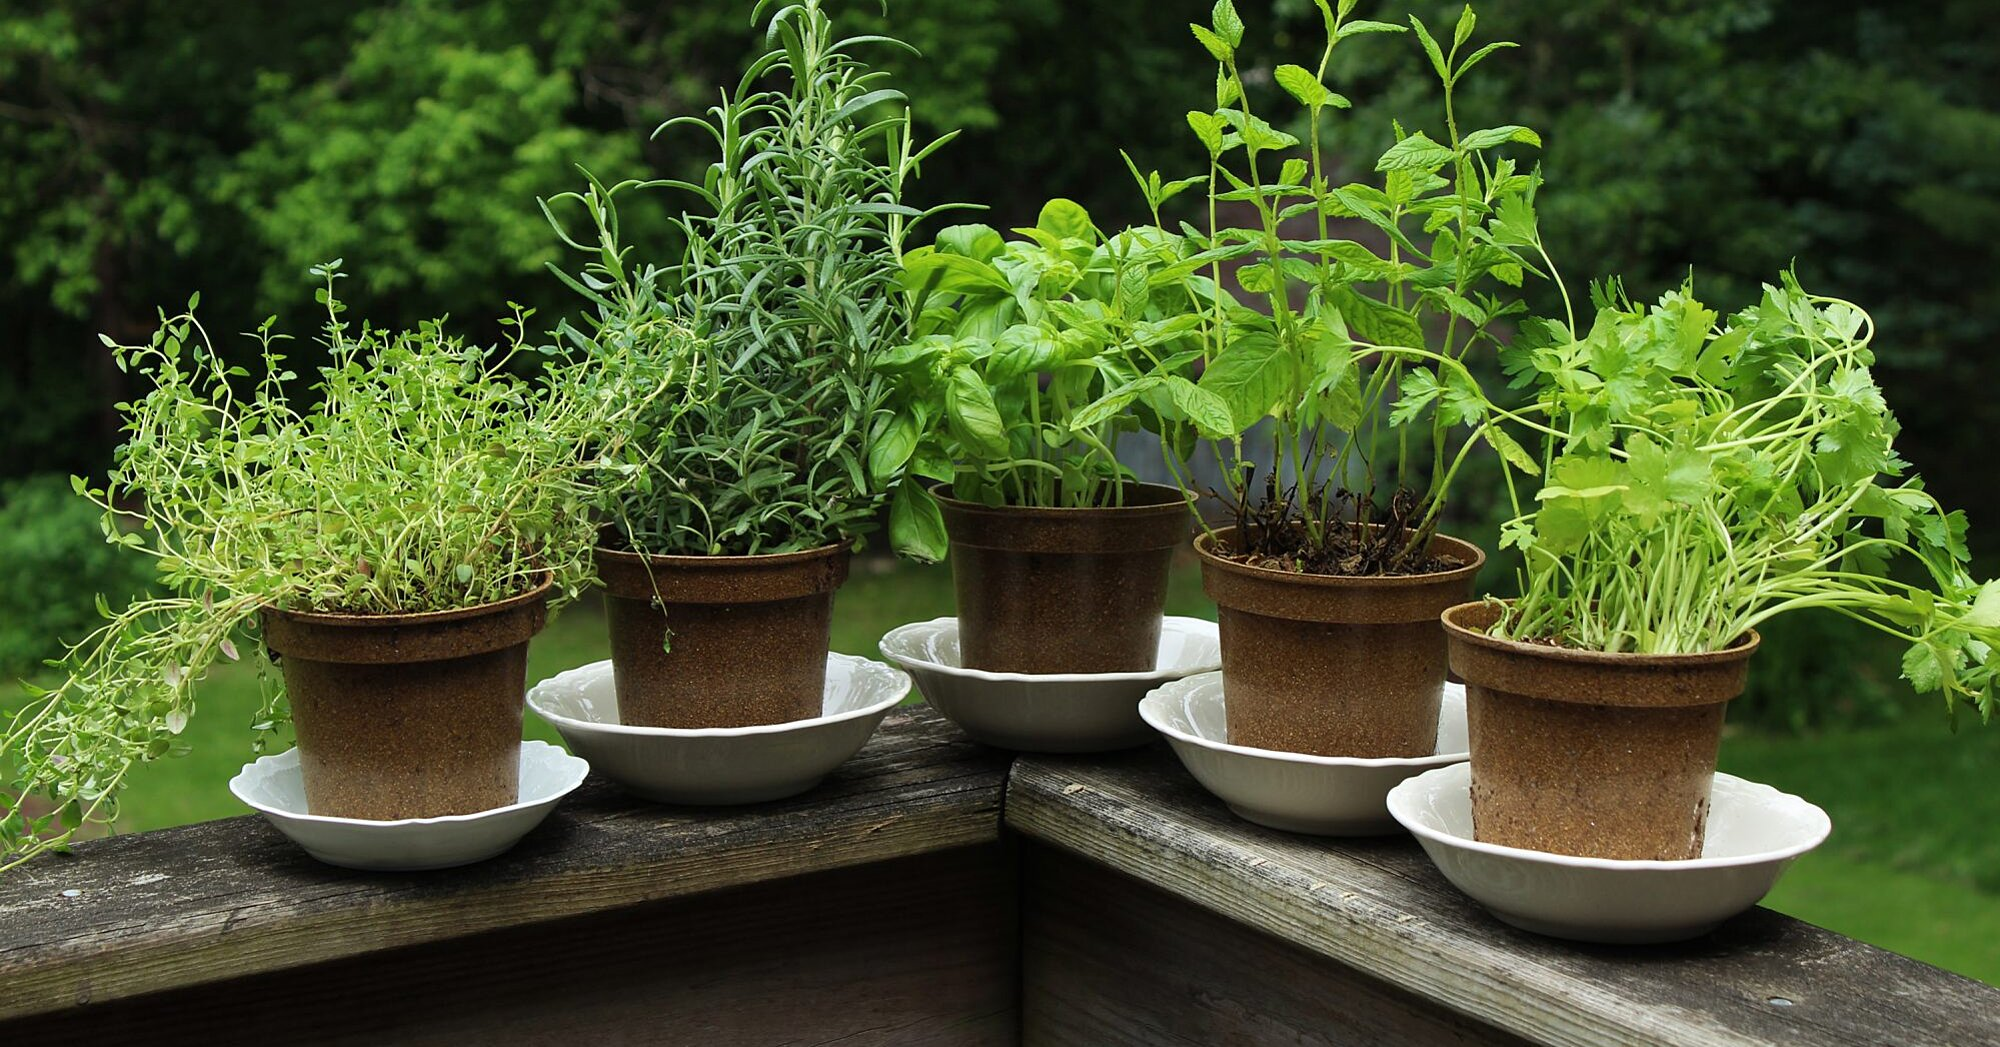 6 Easy-to-Grow Herbs That Help Your Immune System